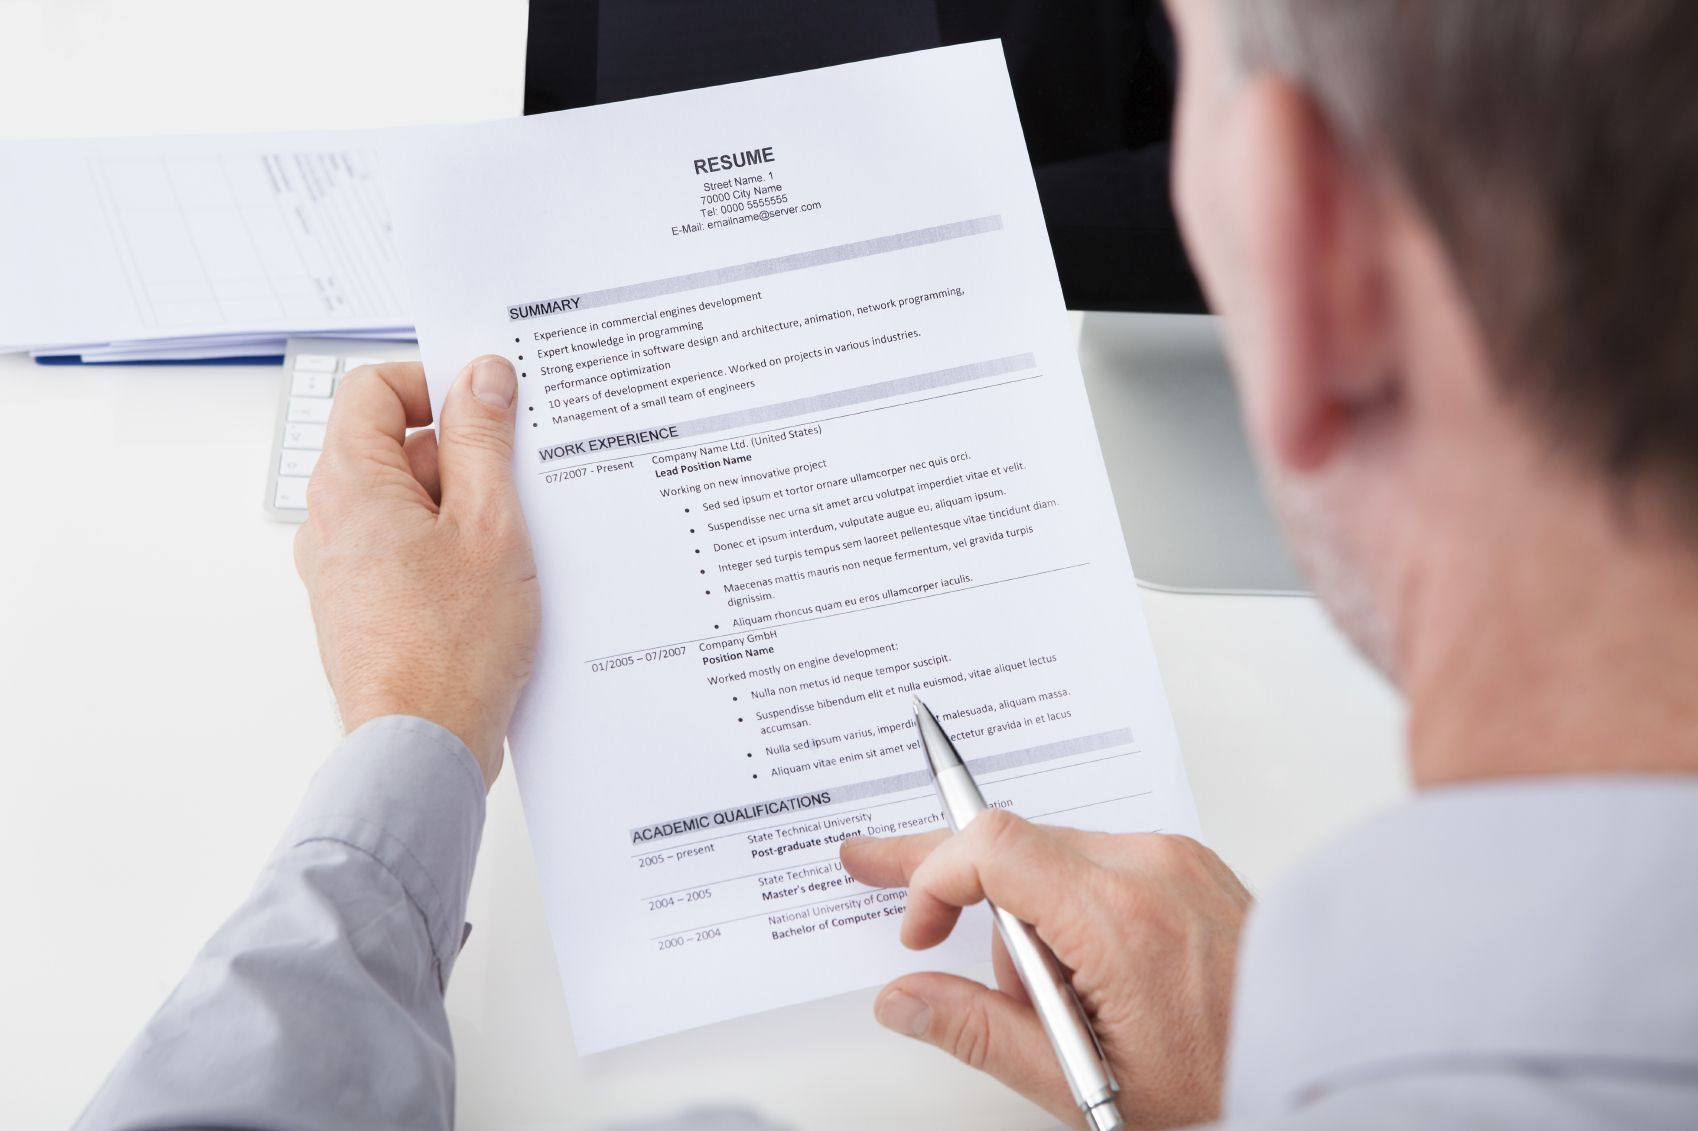 Your resume will catch the eye of employers by including